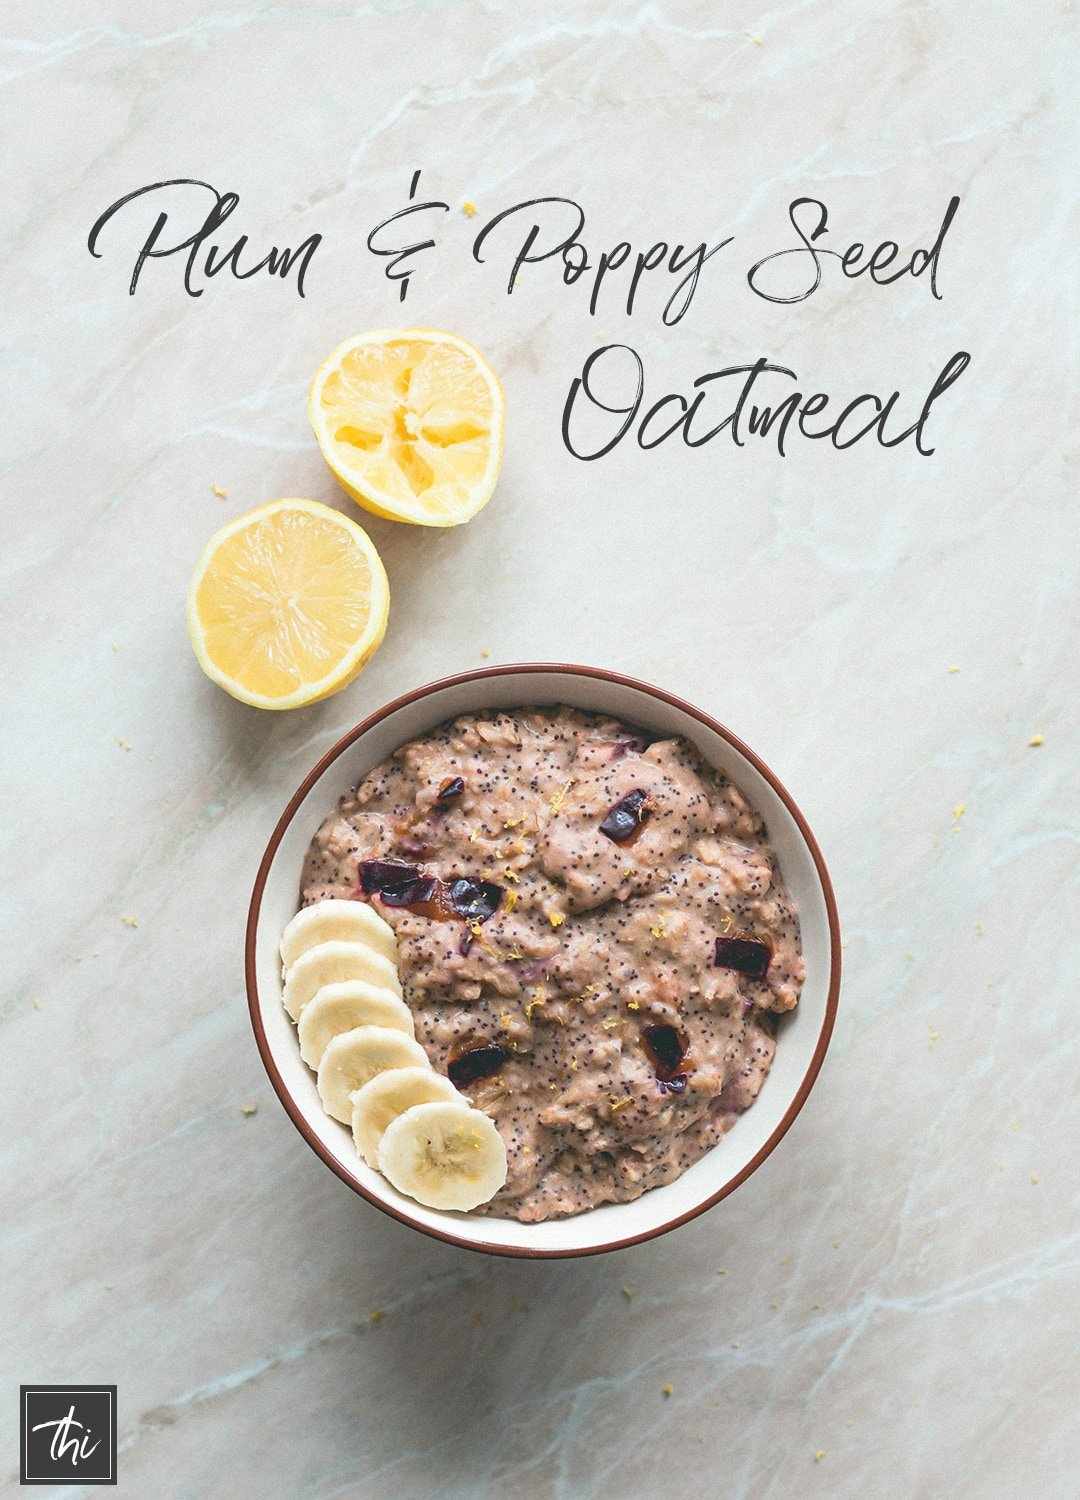 Plum Poppy Seed Oatmeal (vegan, gluten-free) - this oatmeal is really easy to make and it's the perfect healthy breakfast to fuel you through the day! Plums, oats, almond milk, poppy seeds, and a few spices. YUM! | thehealthfulideas.com